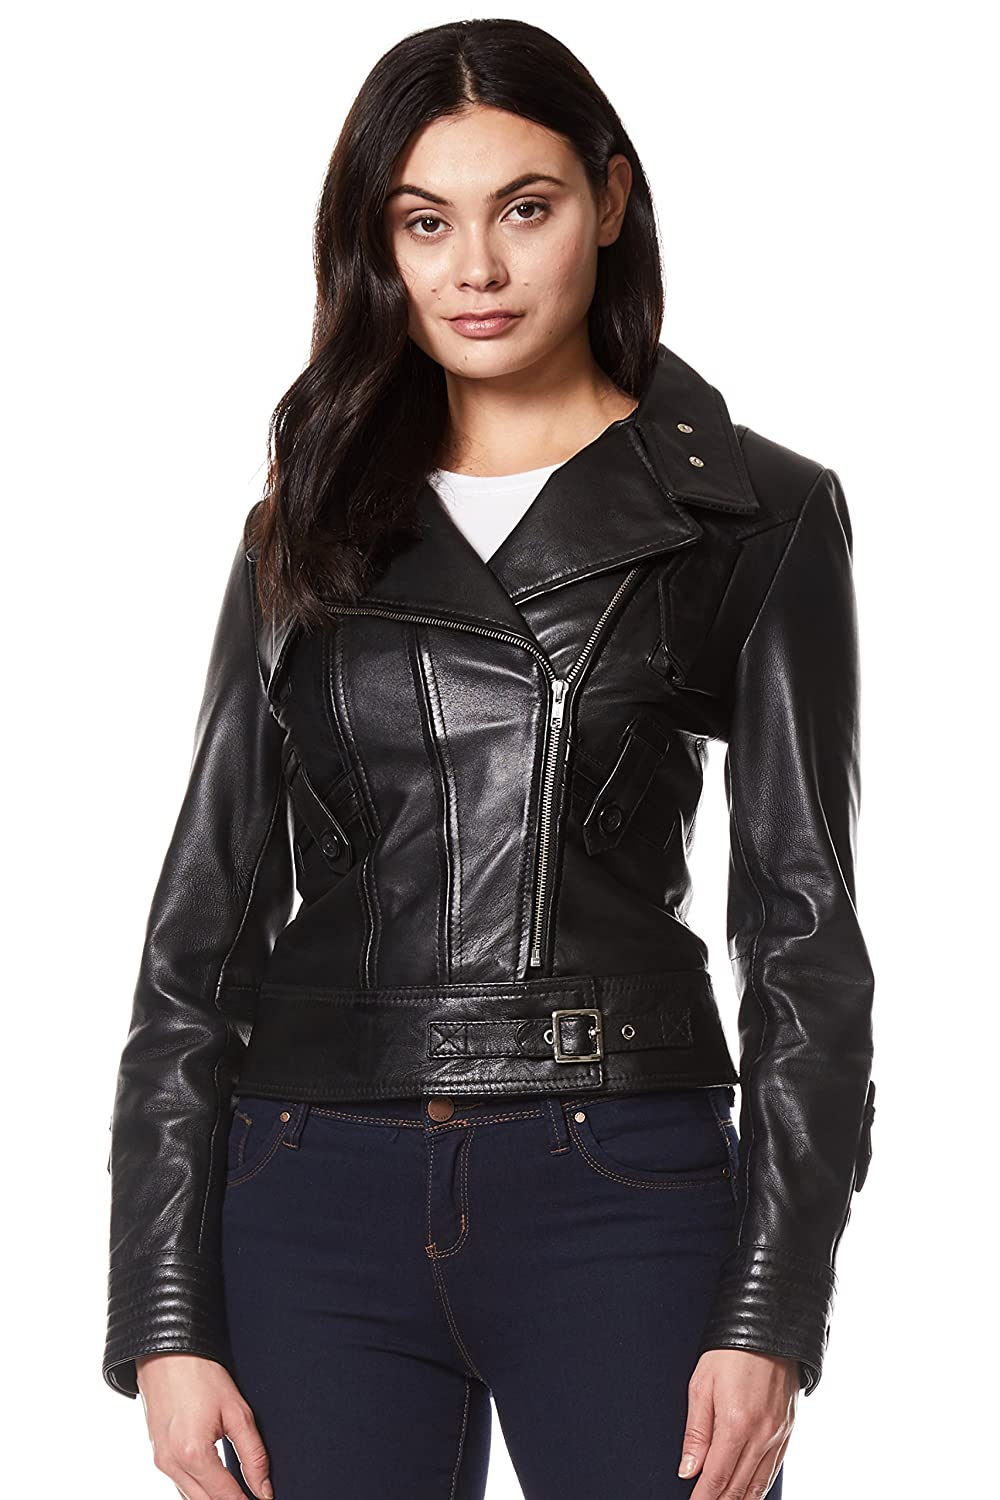 Carrie CH Hoxton Ladies Black Rock 'Supermodel' Biker Style Designer 100% Real Napa Leather Jacket